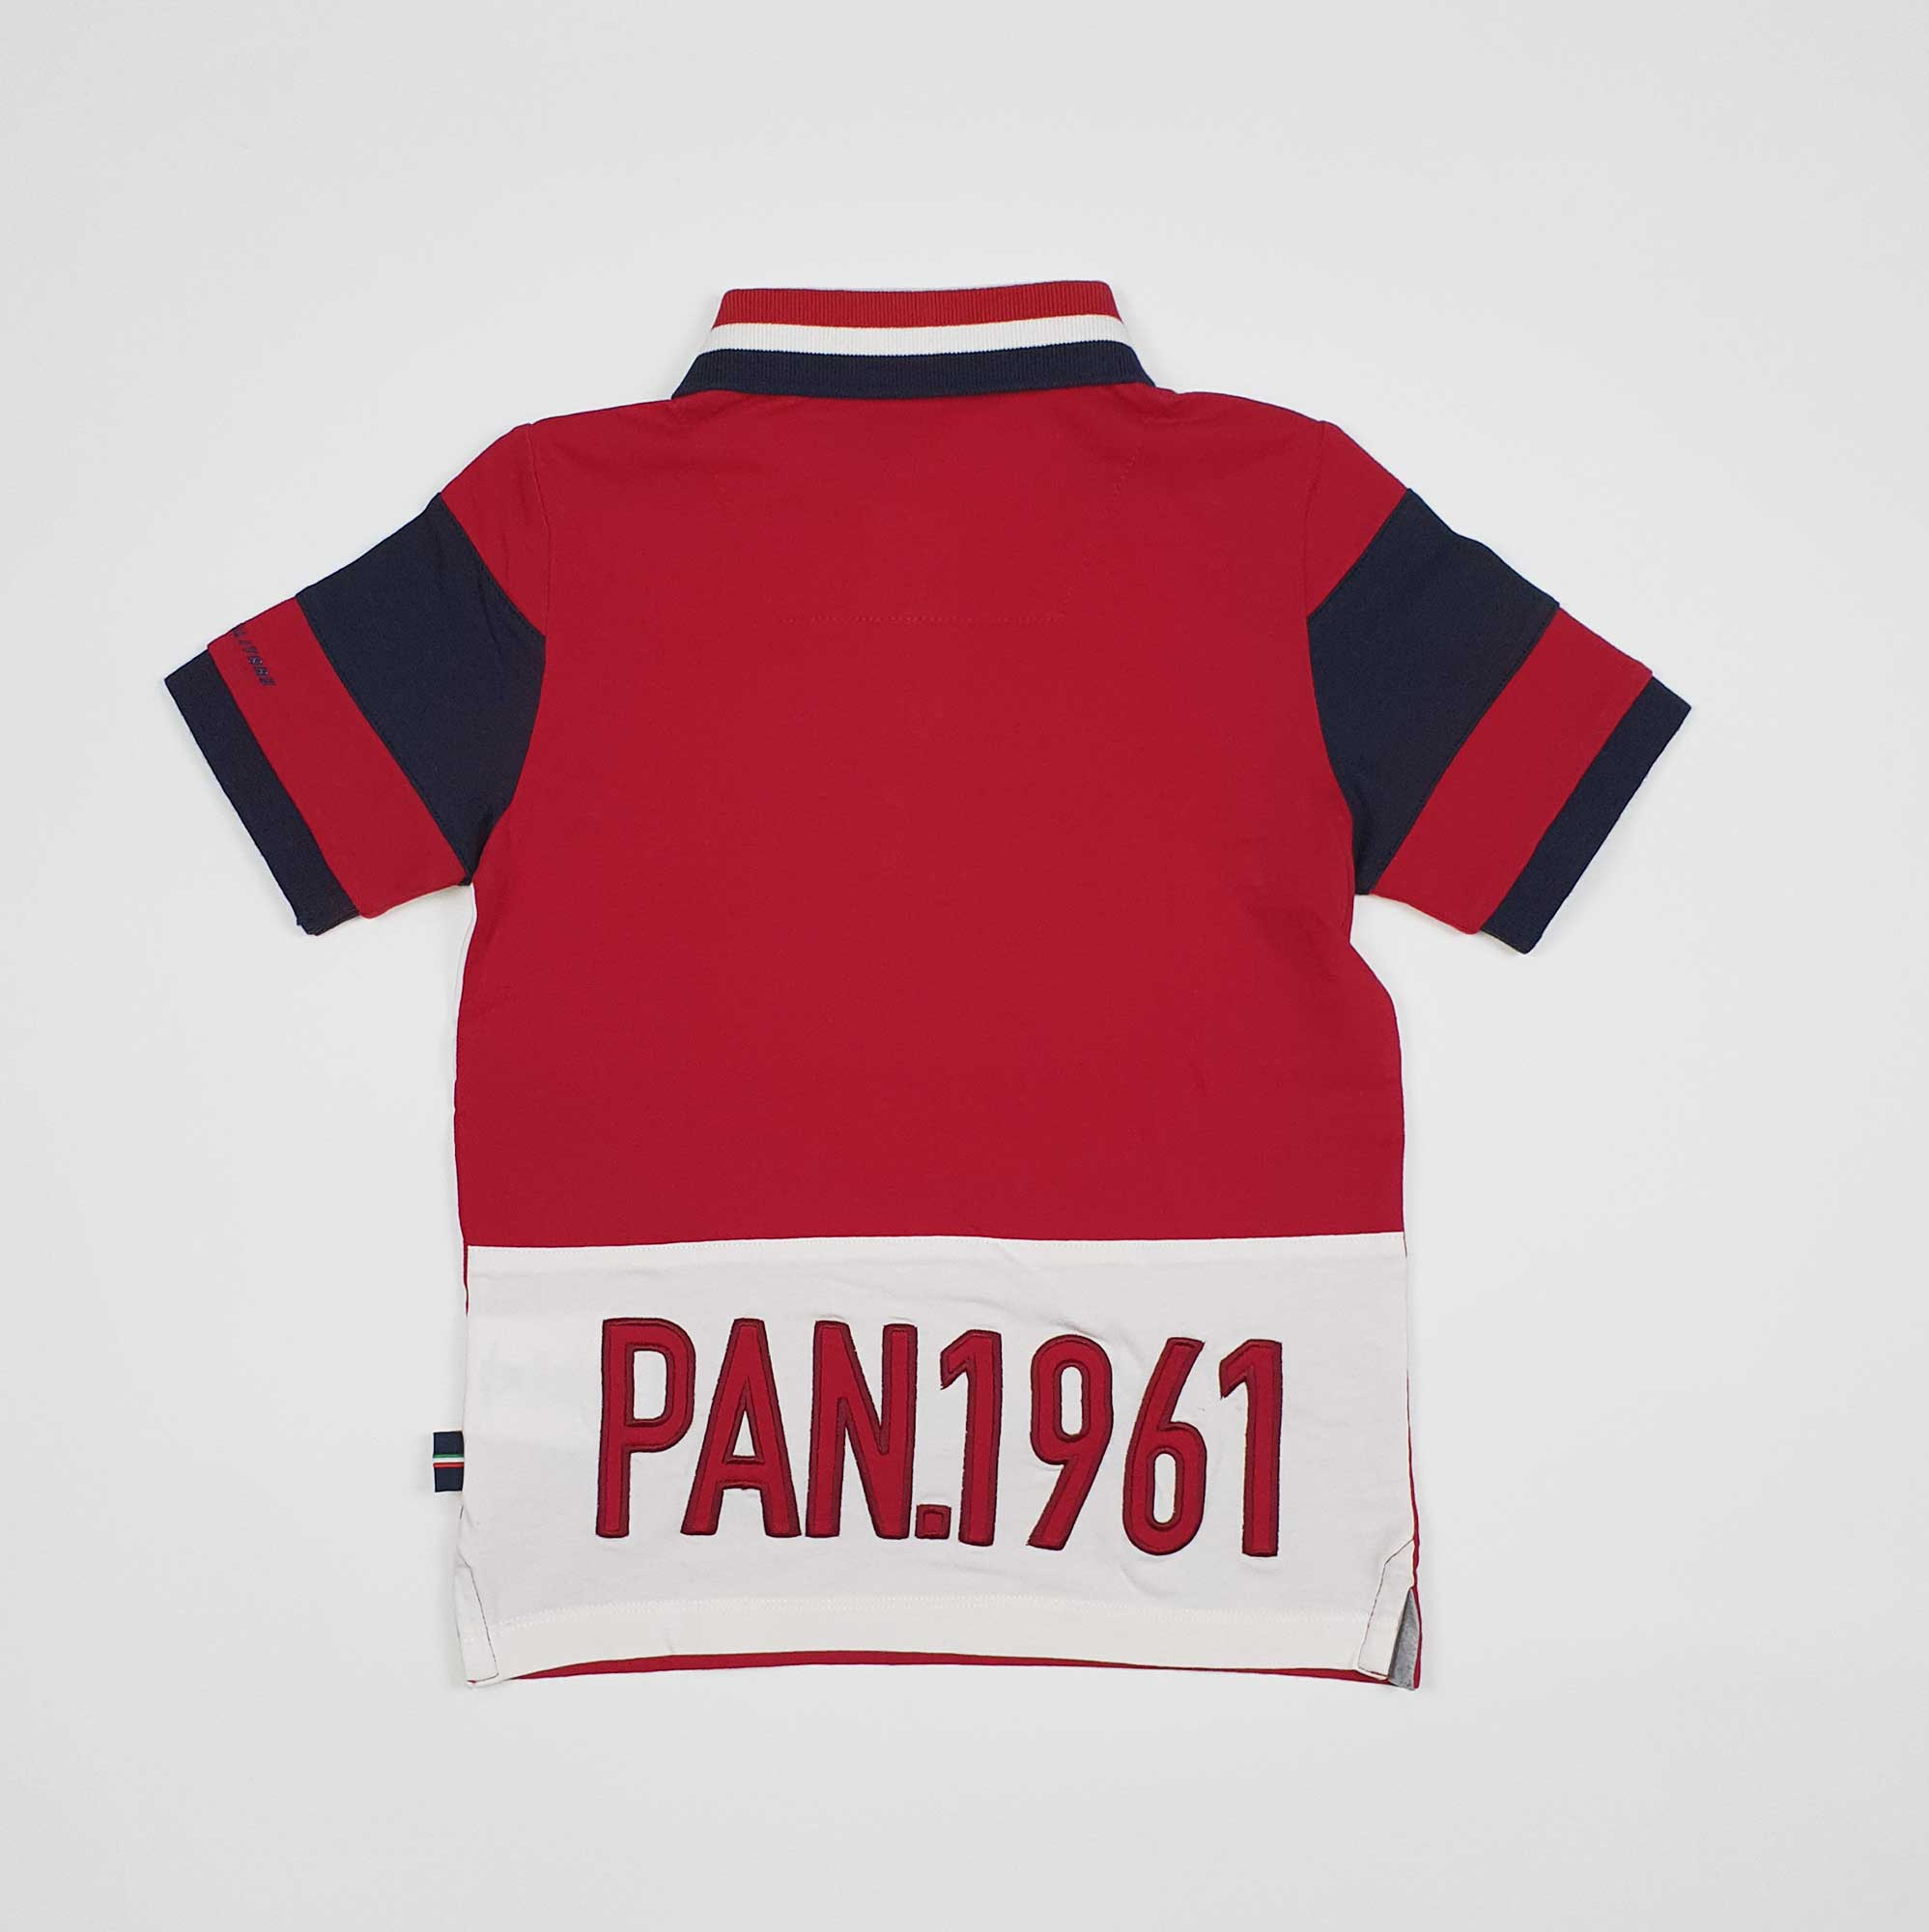 Polo PAN 1961- Rosso